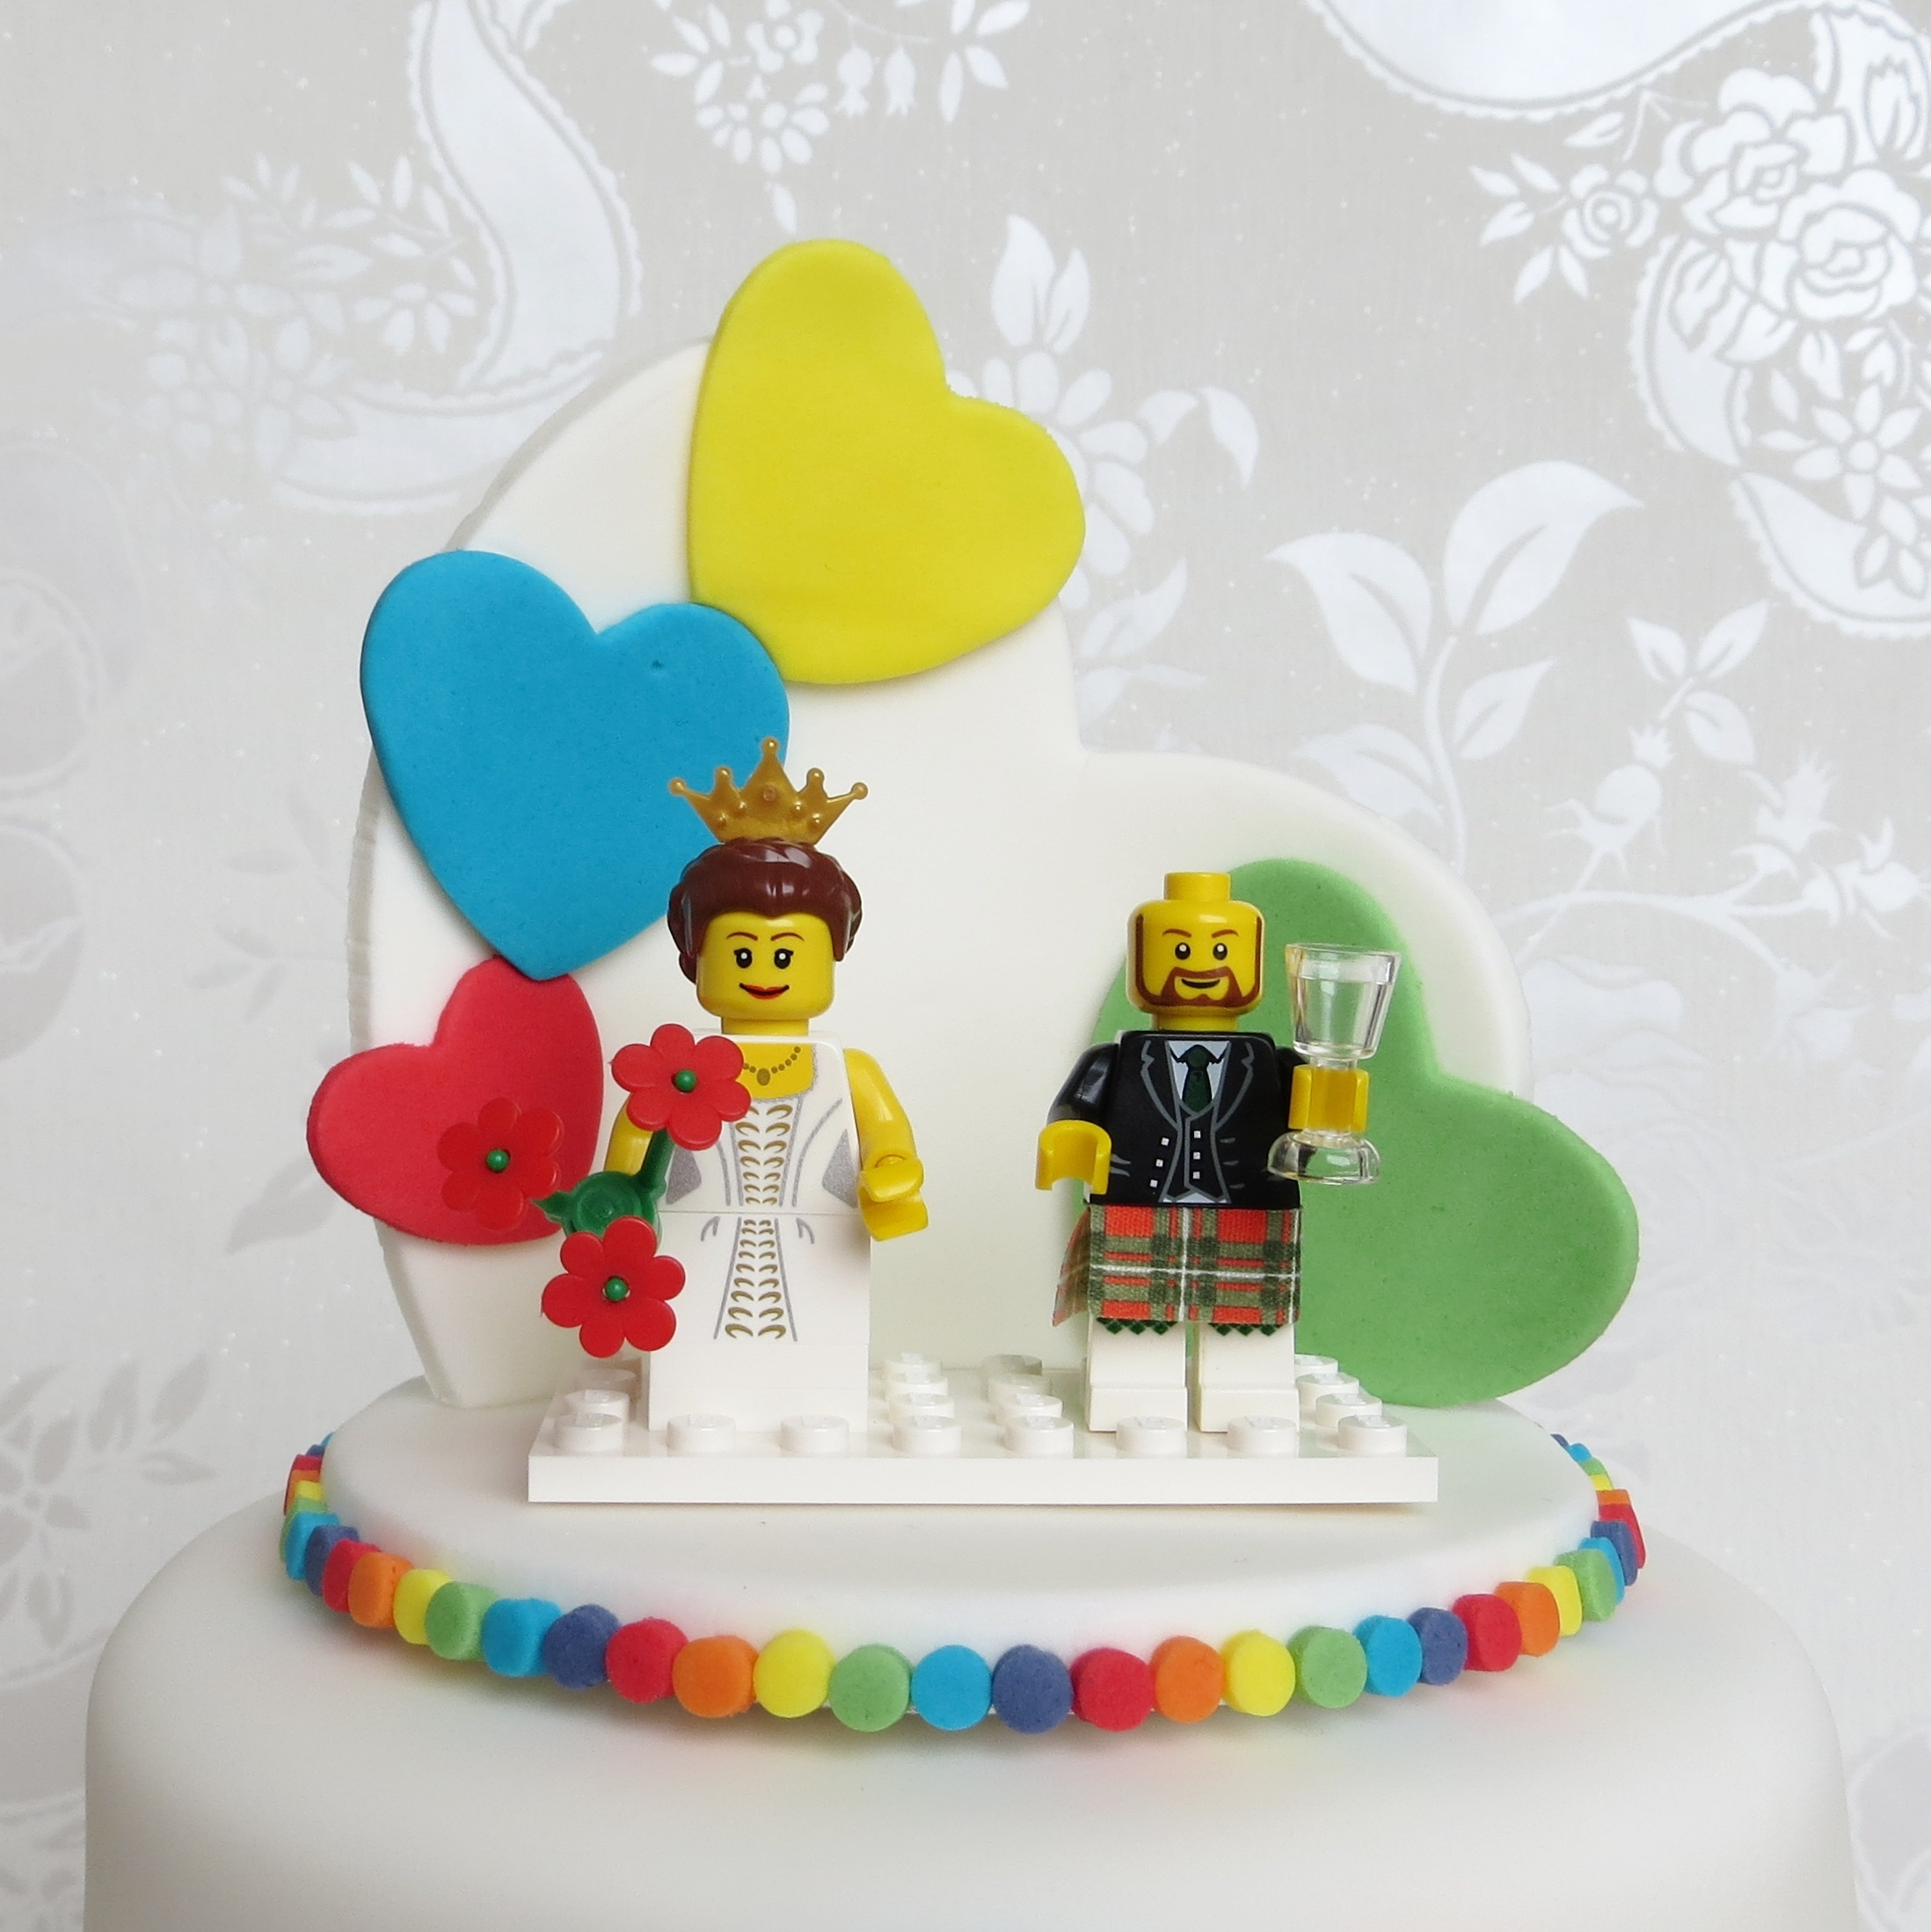 Rainbow Heart Wedding Cake With Lego Topper CakeCentral